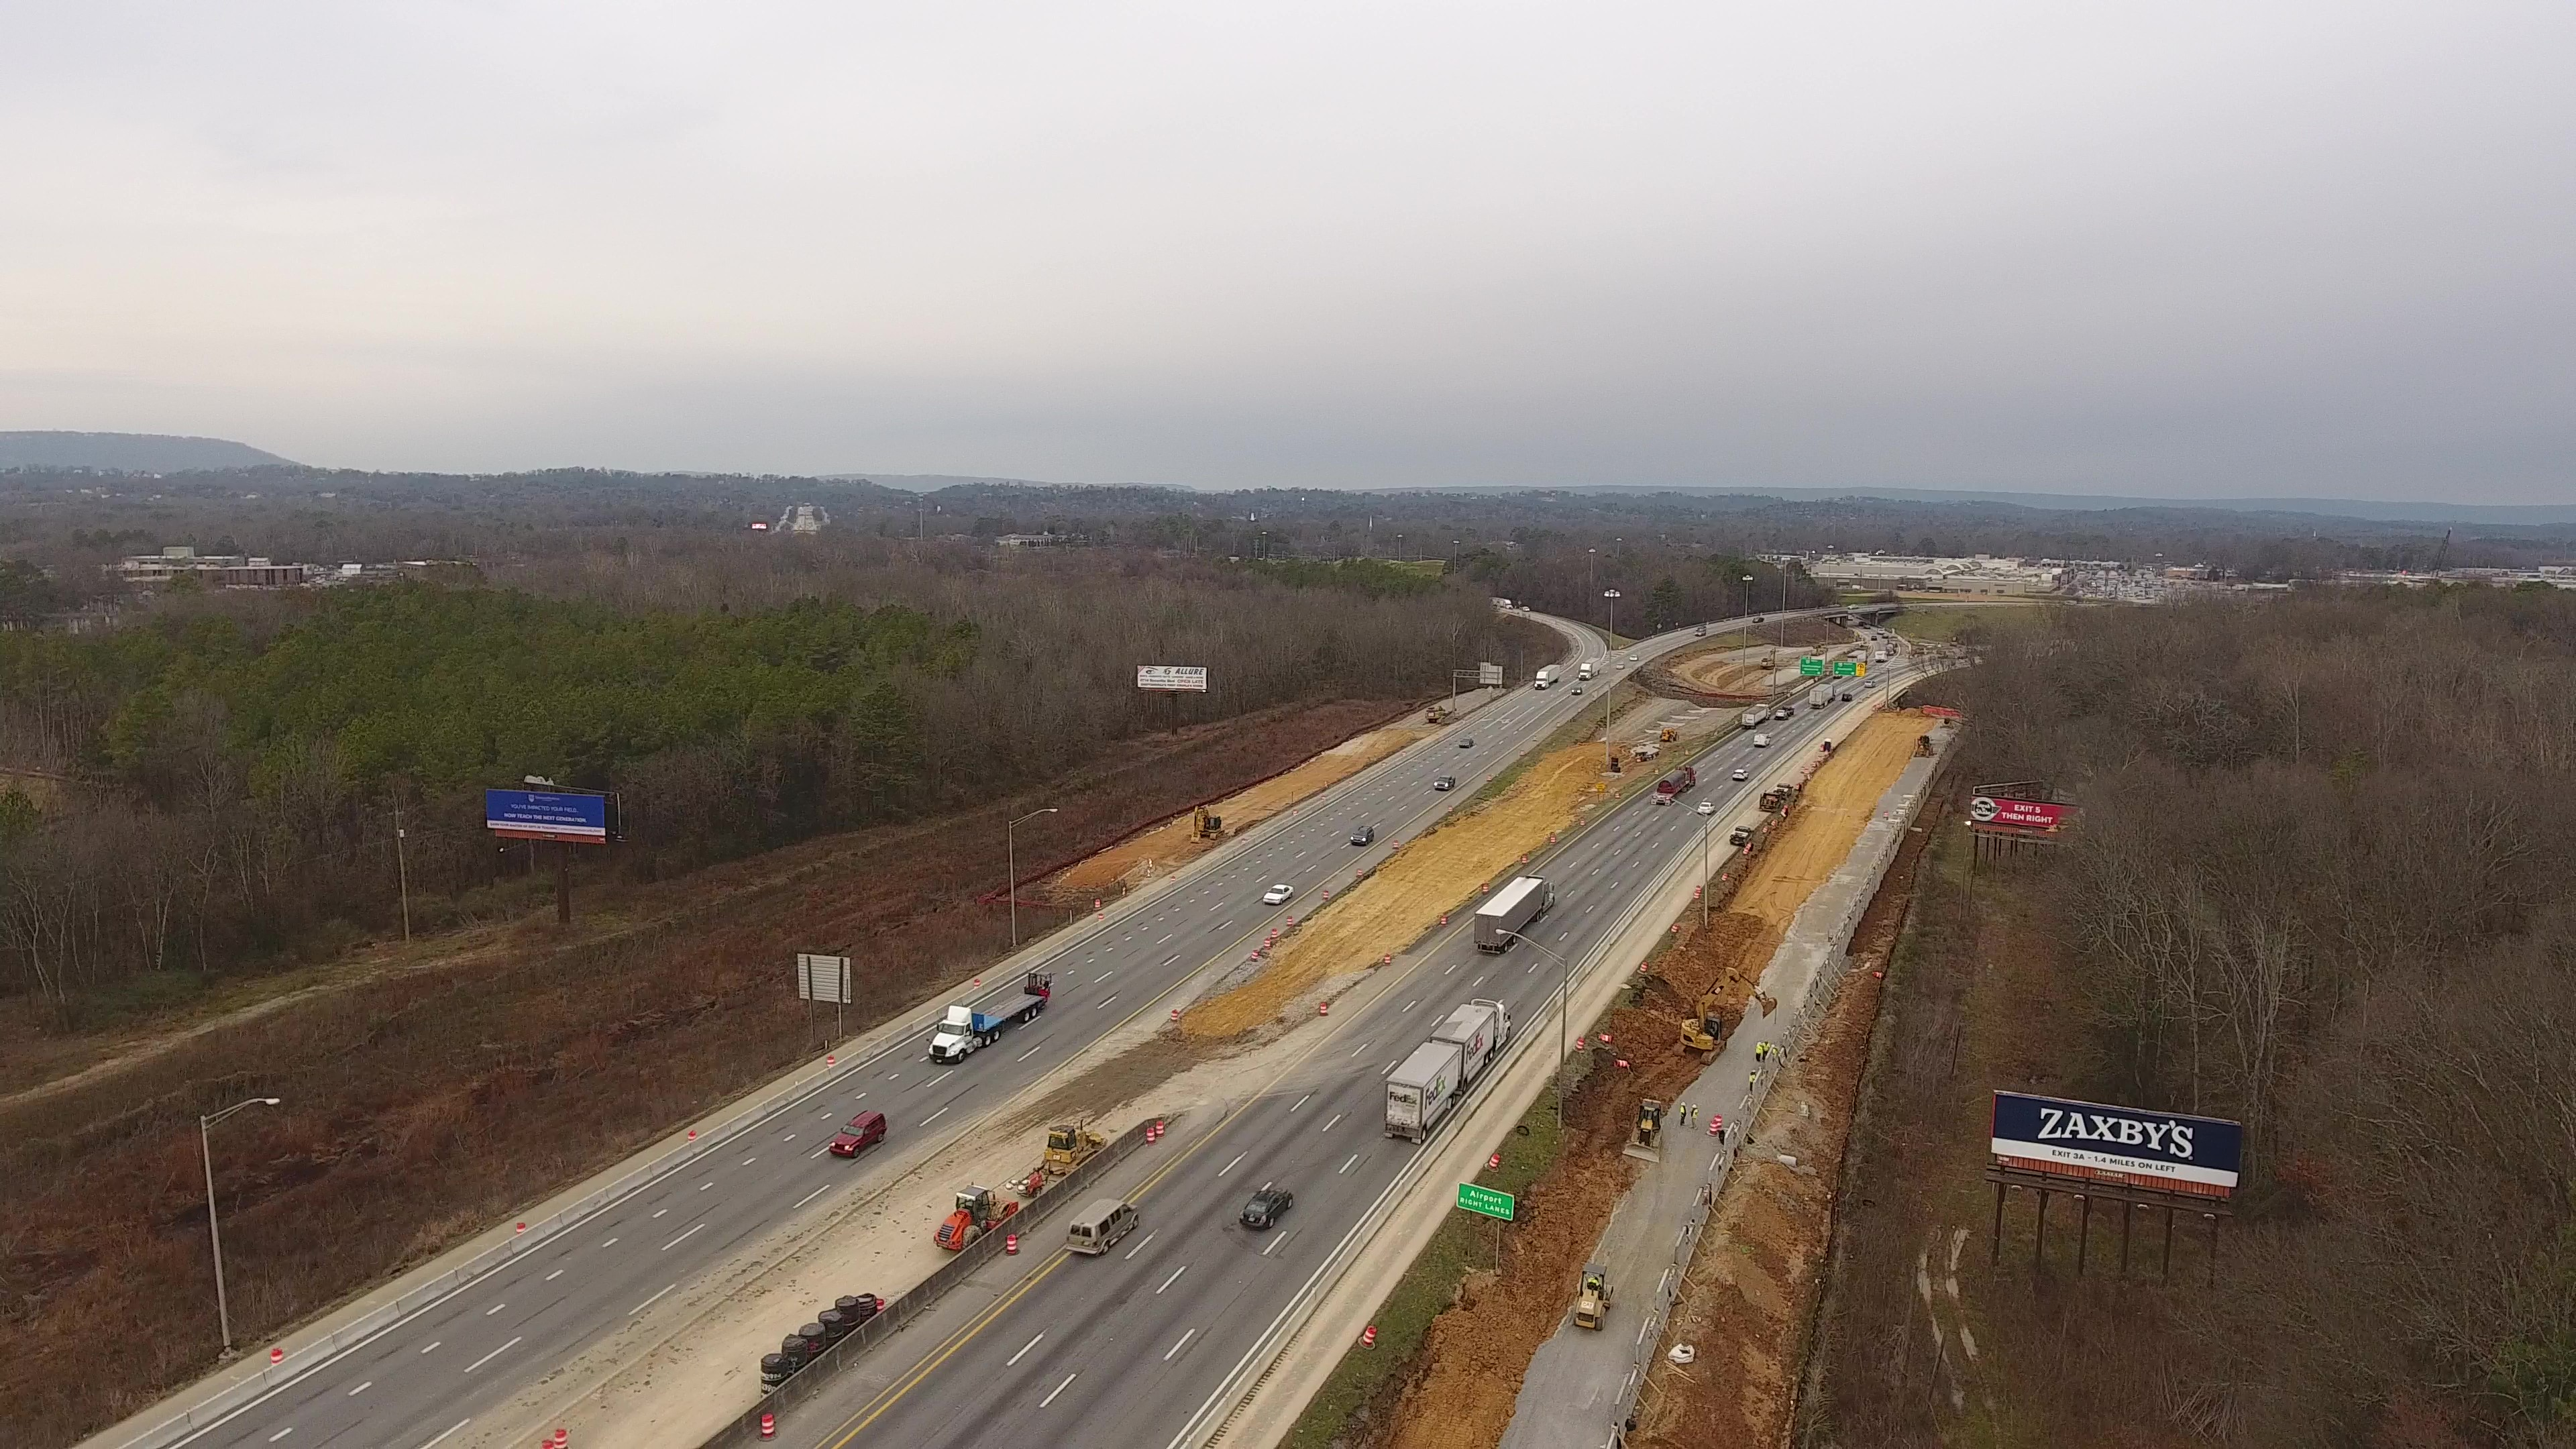 I-75, south of interchange, looking north - Feb 2020